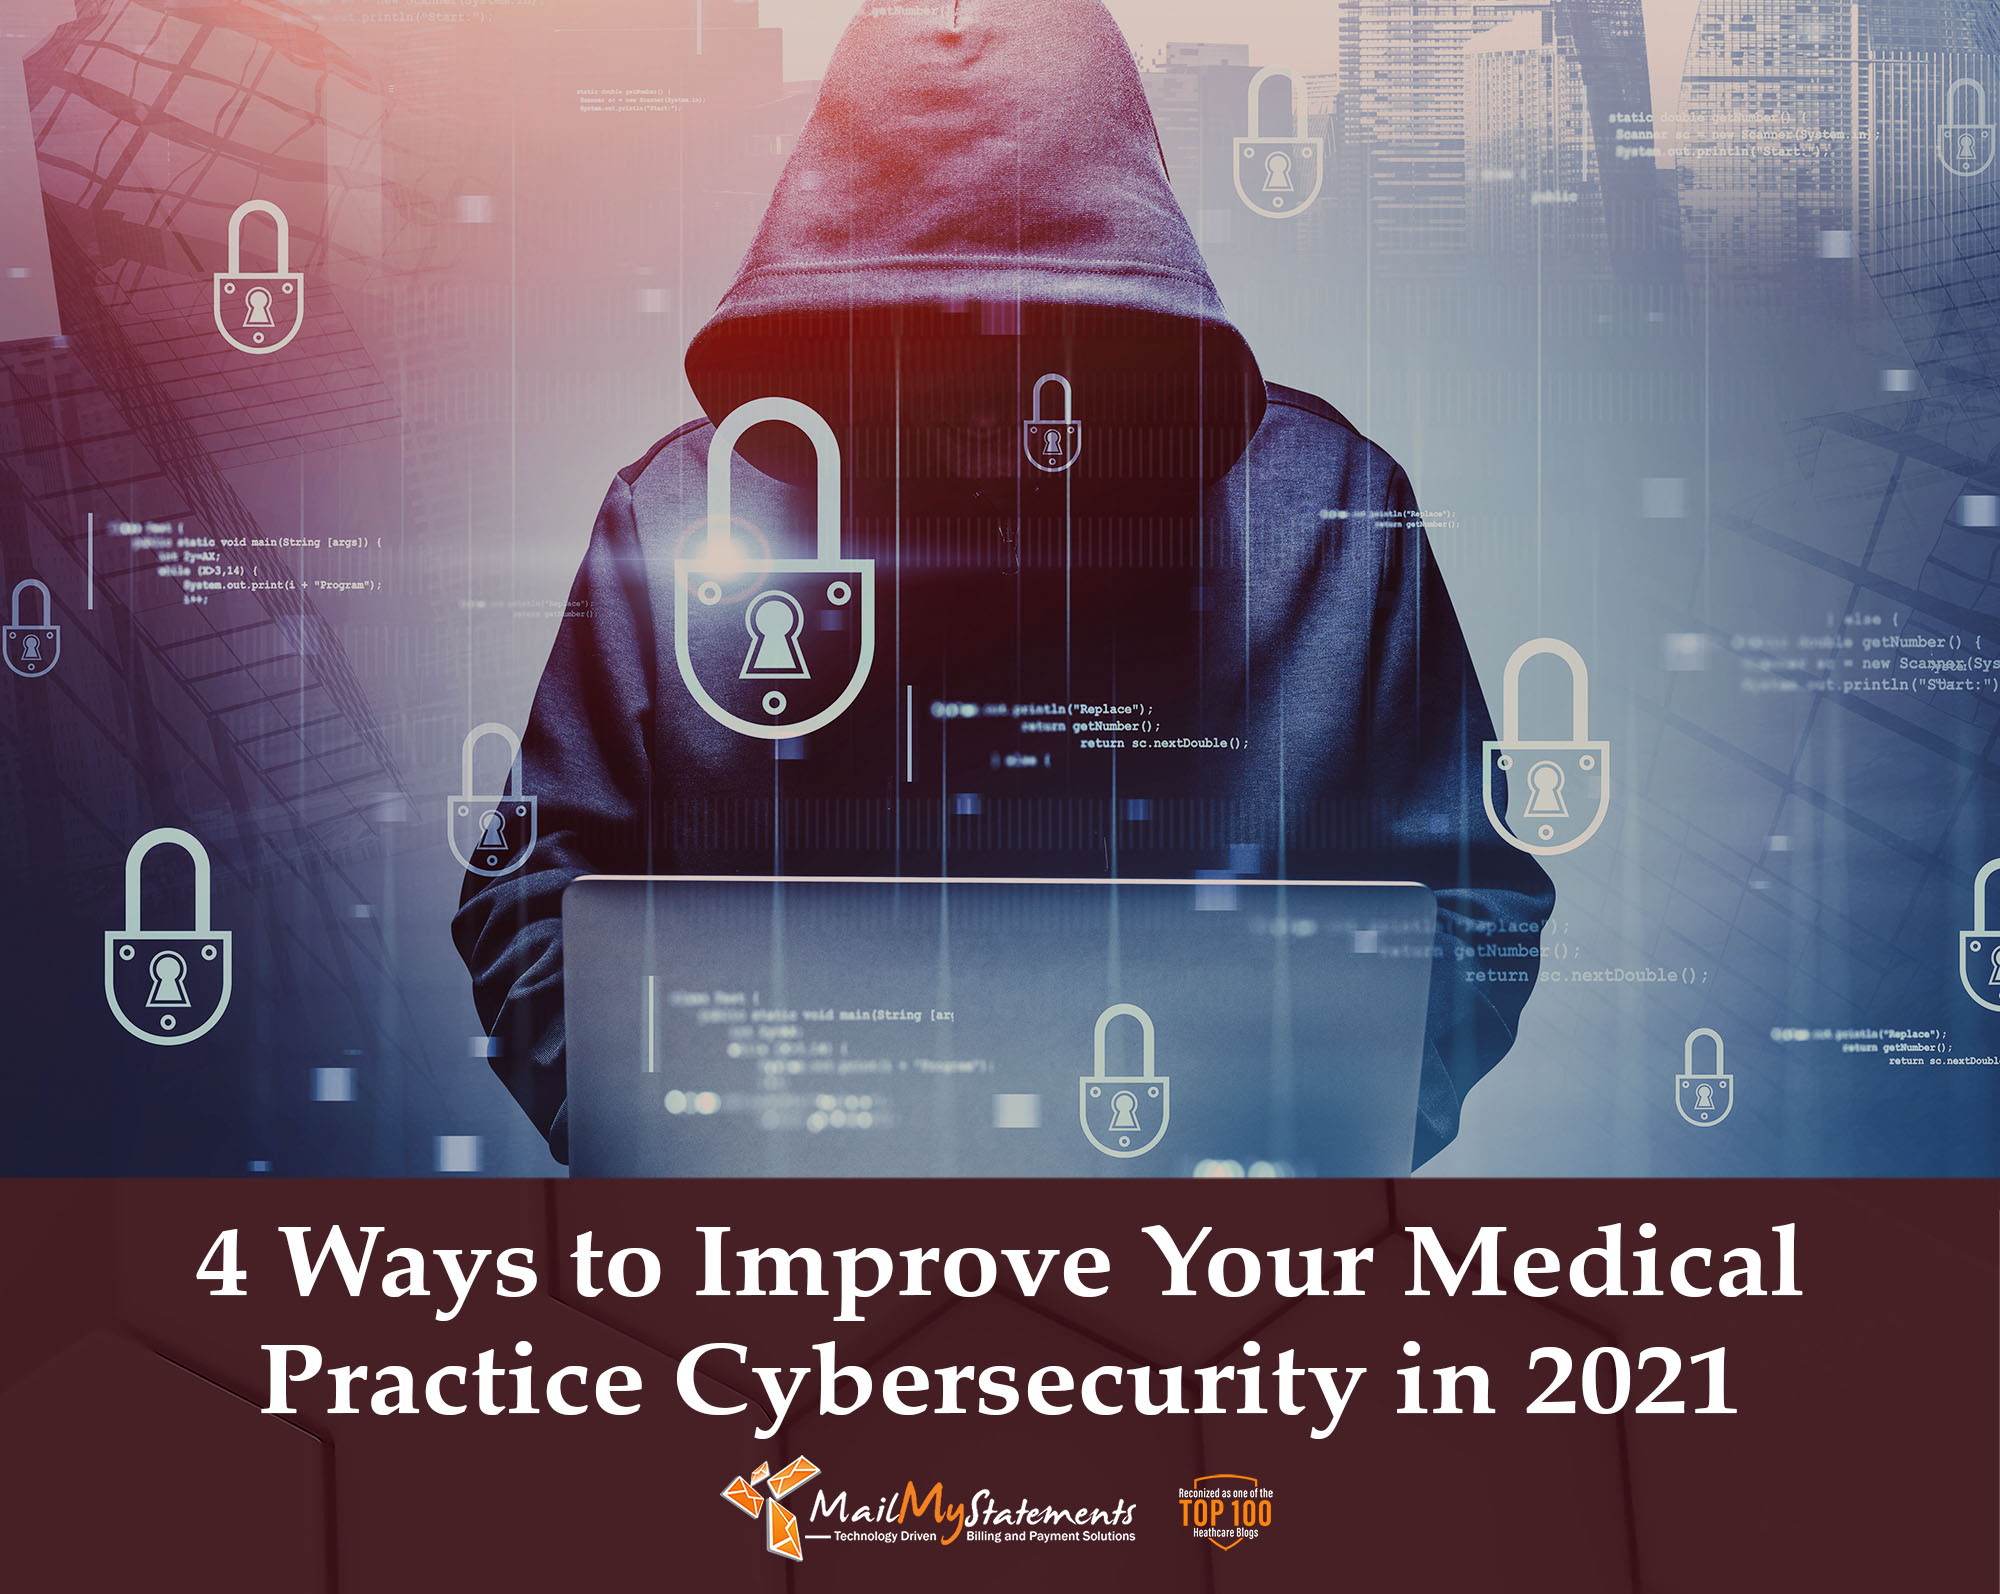 4 Ways to Improve Your Medical Practice Cybersecurity in 2021